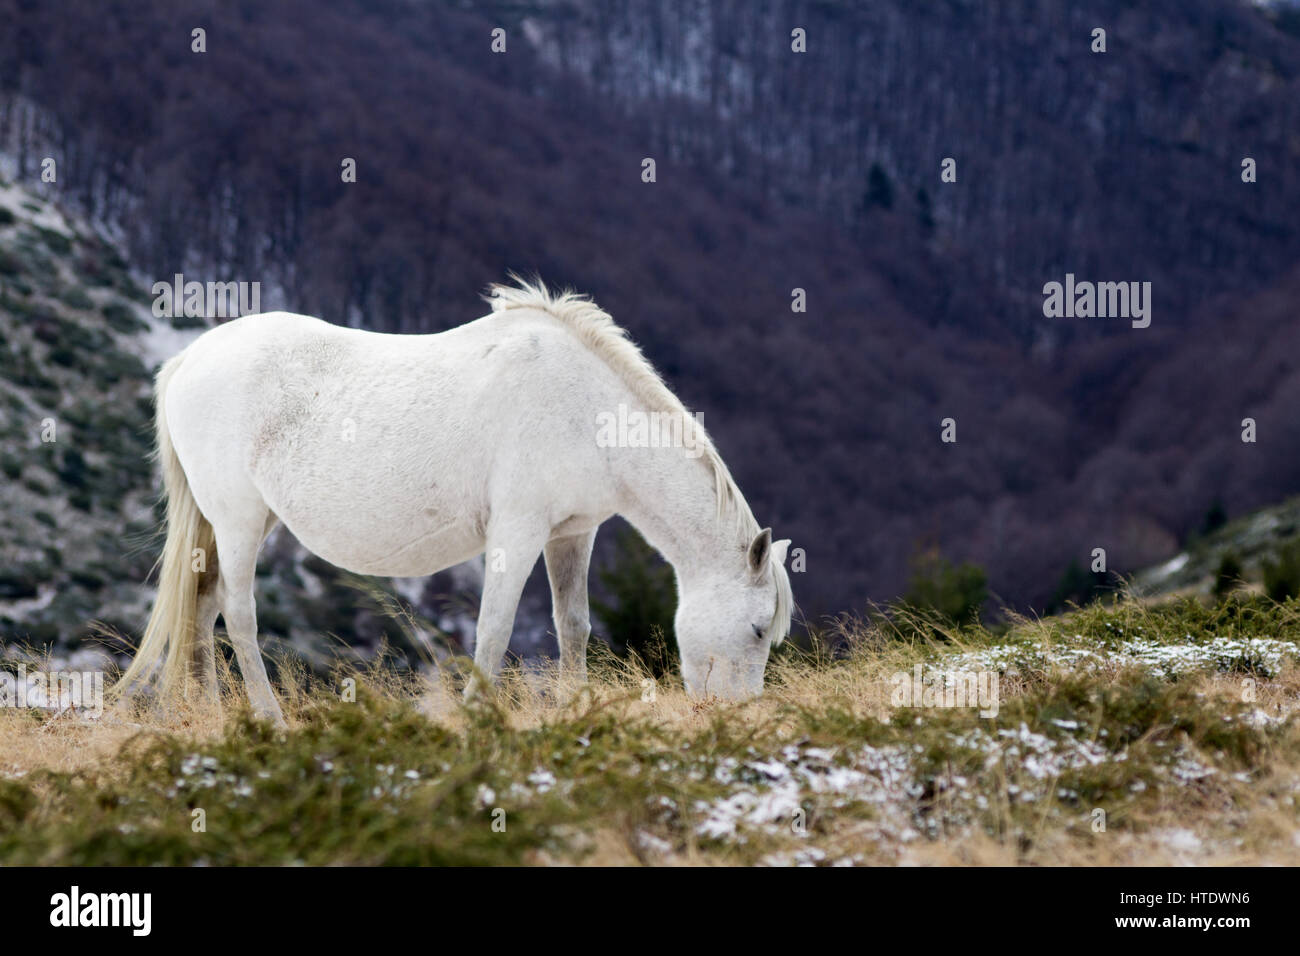 Wild white mustang horse, feeds of a snowy field - Stock Image